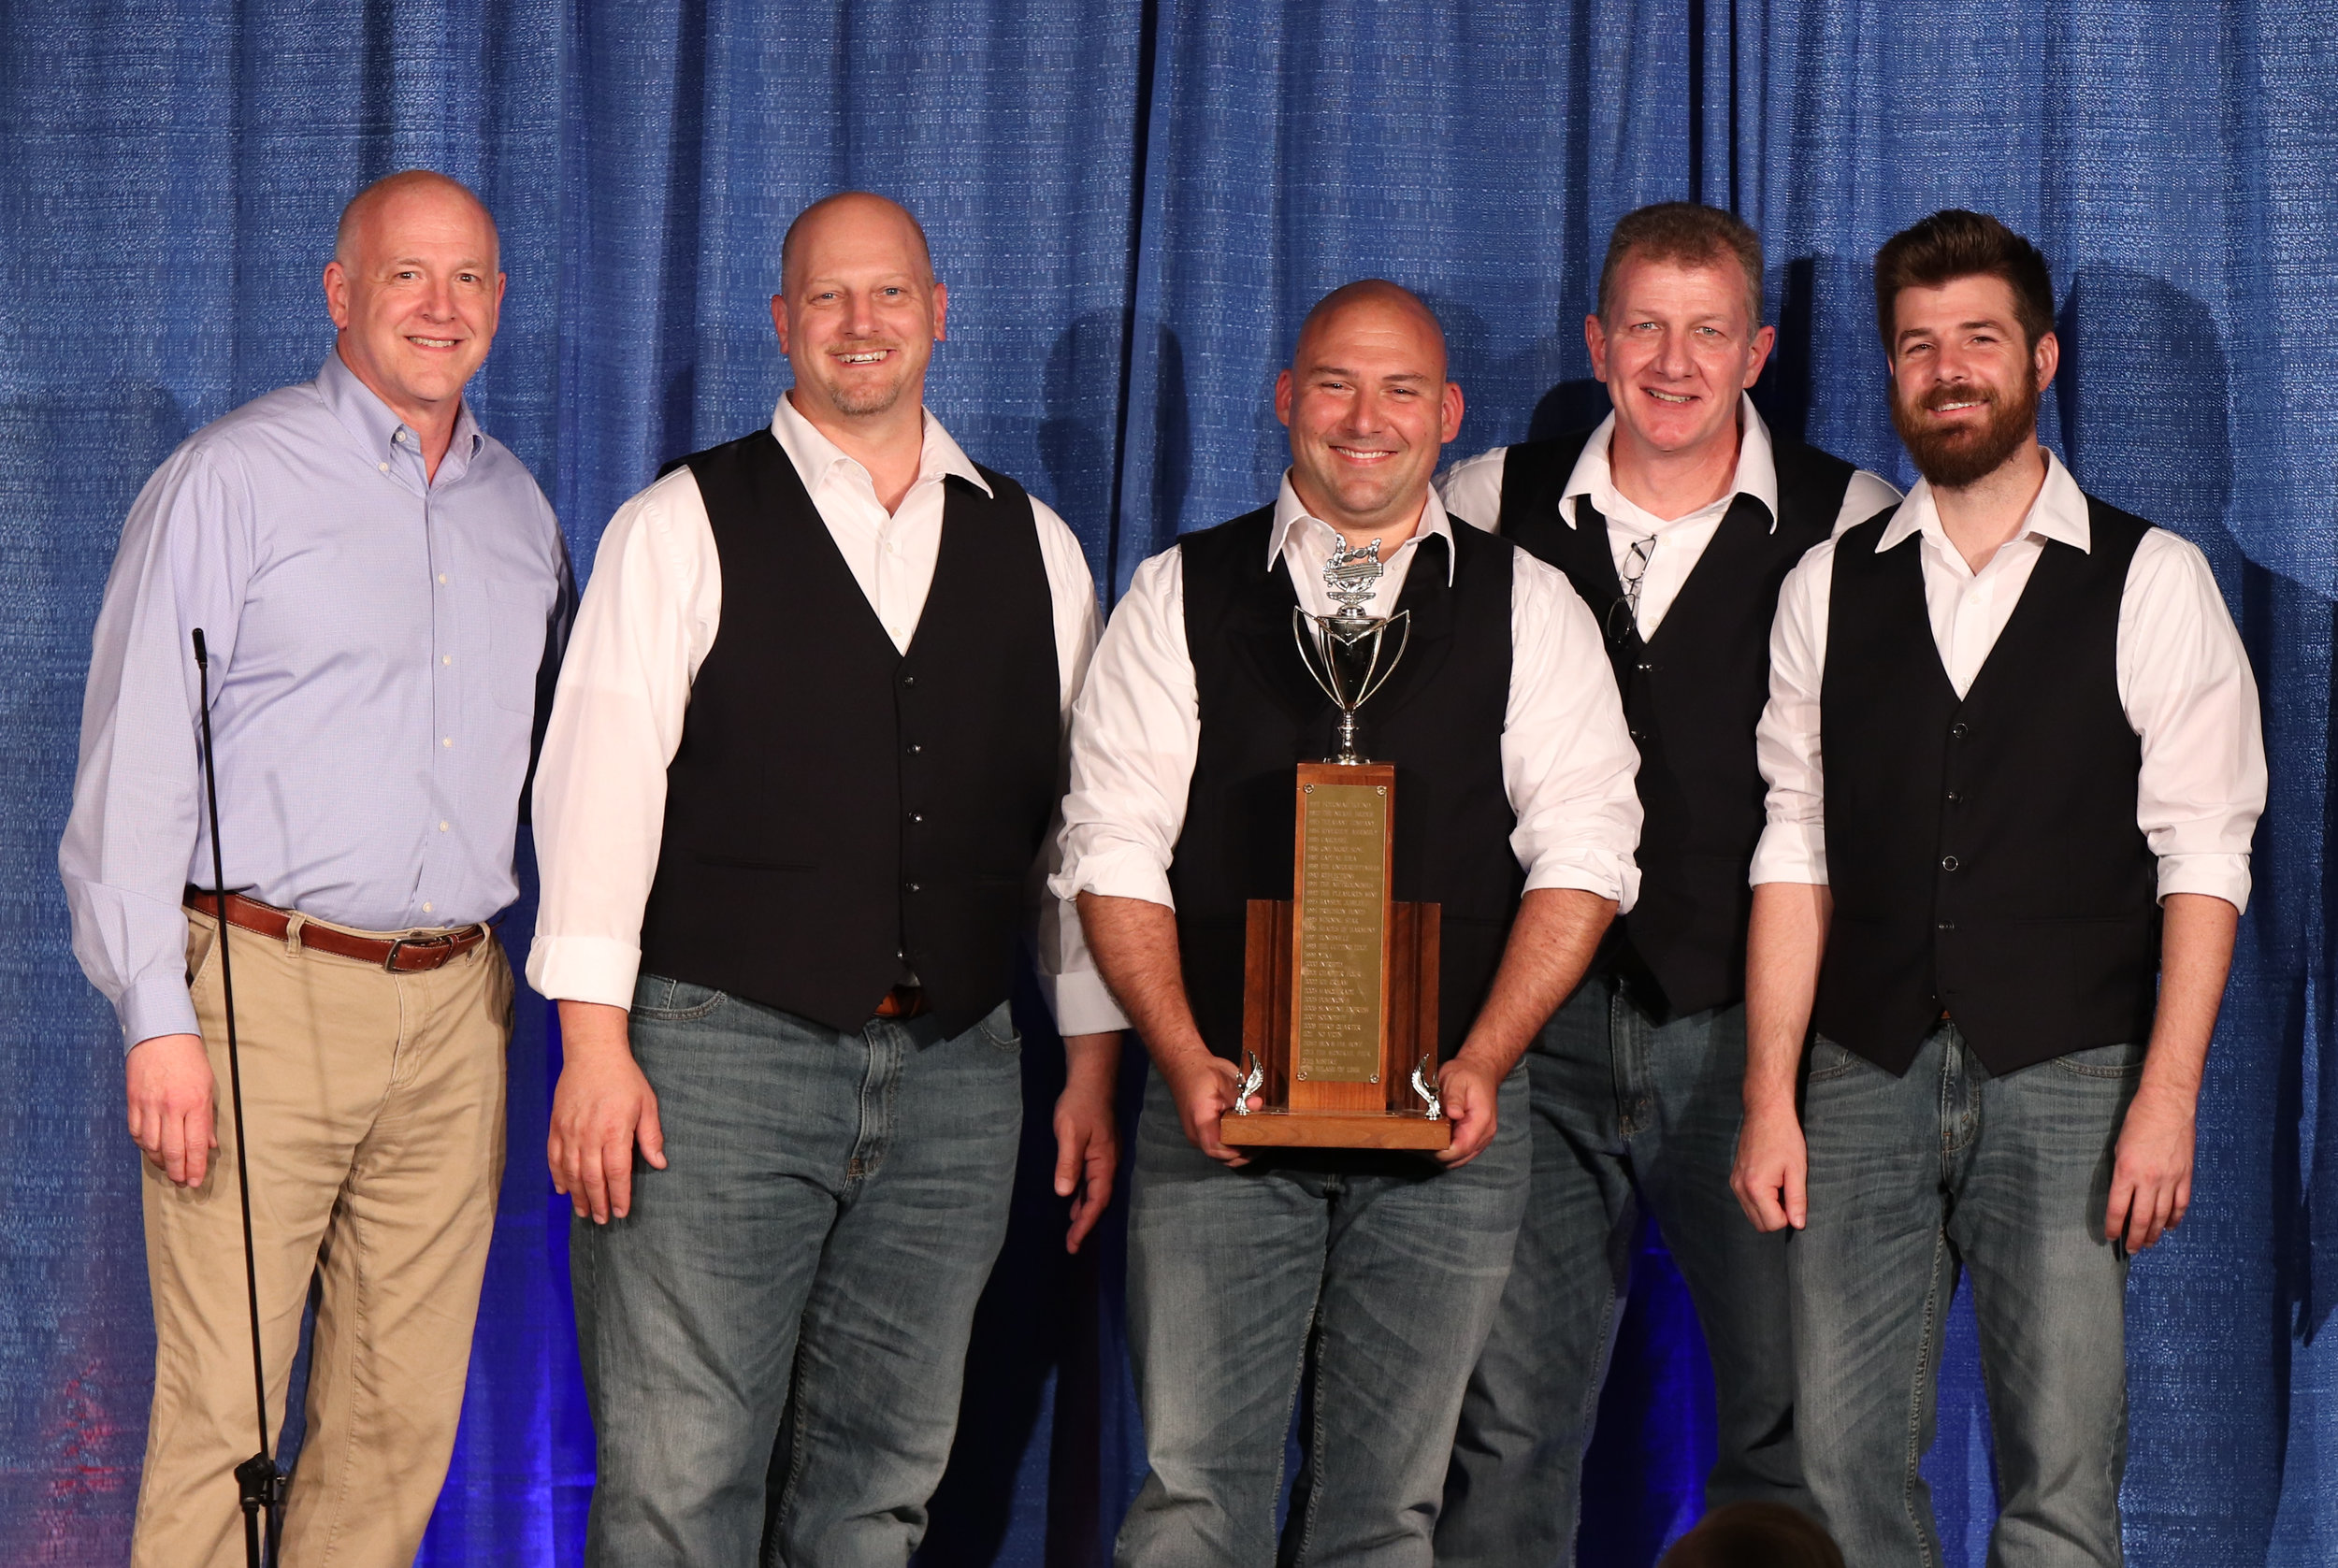 Chordial accepting their trophy for Best Novice Quartet